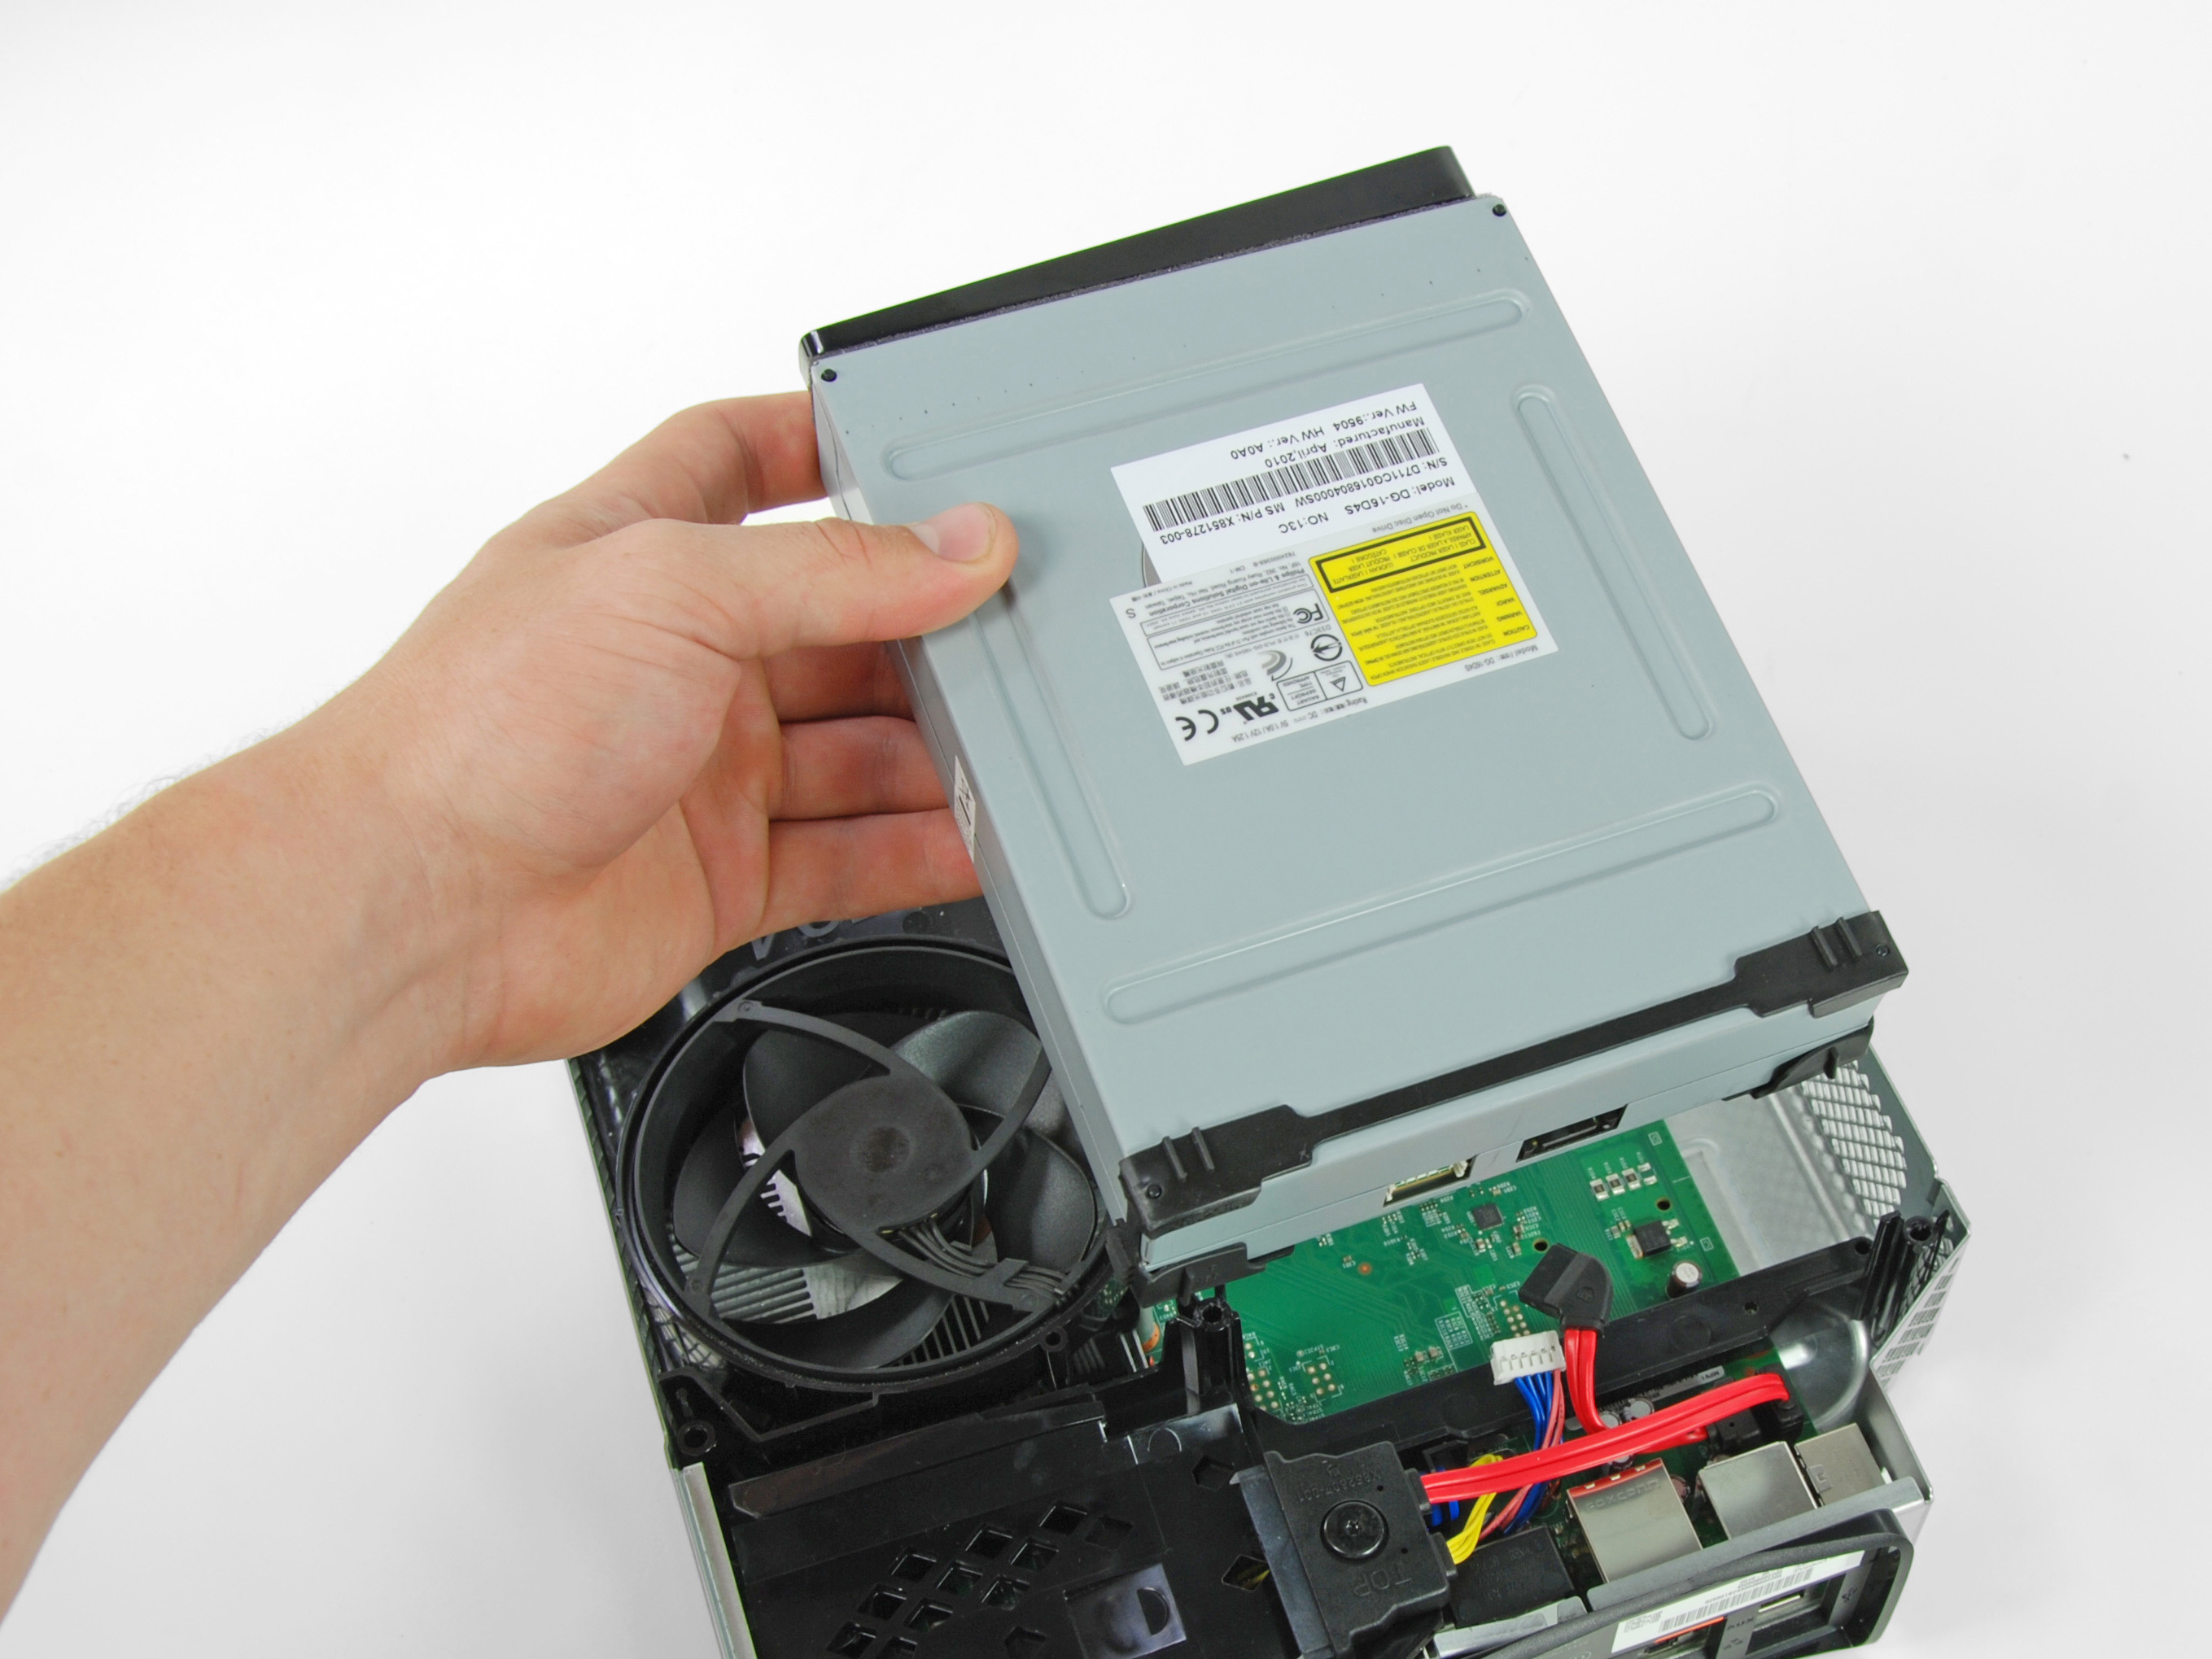 Xbox 360 repair manual PDFs / eBooks